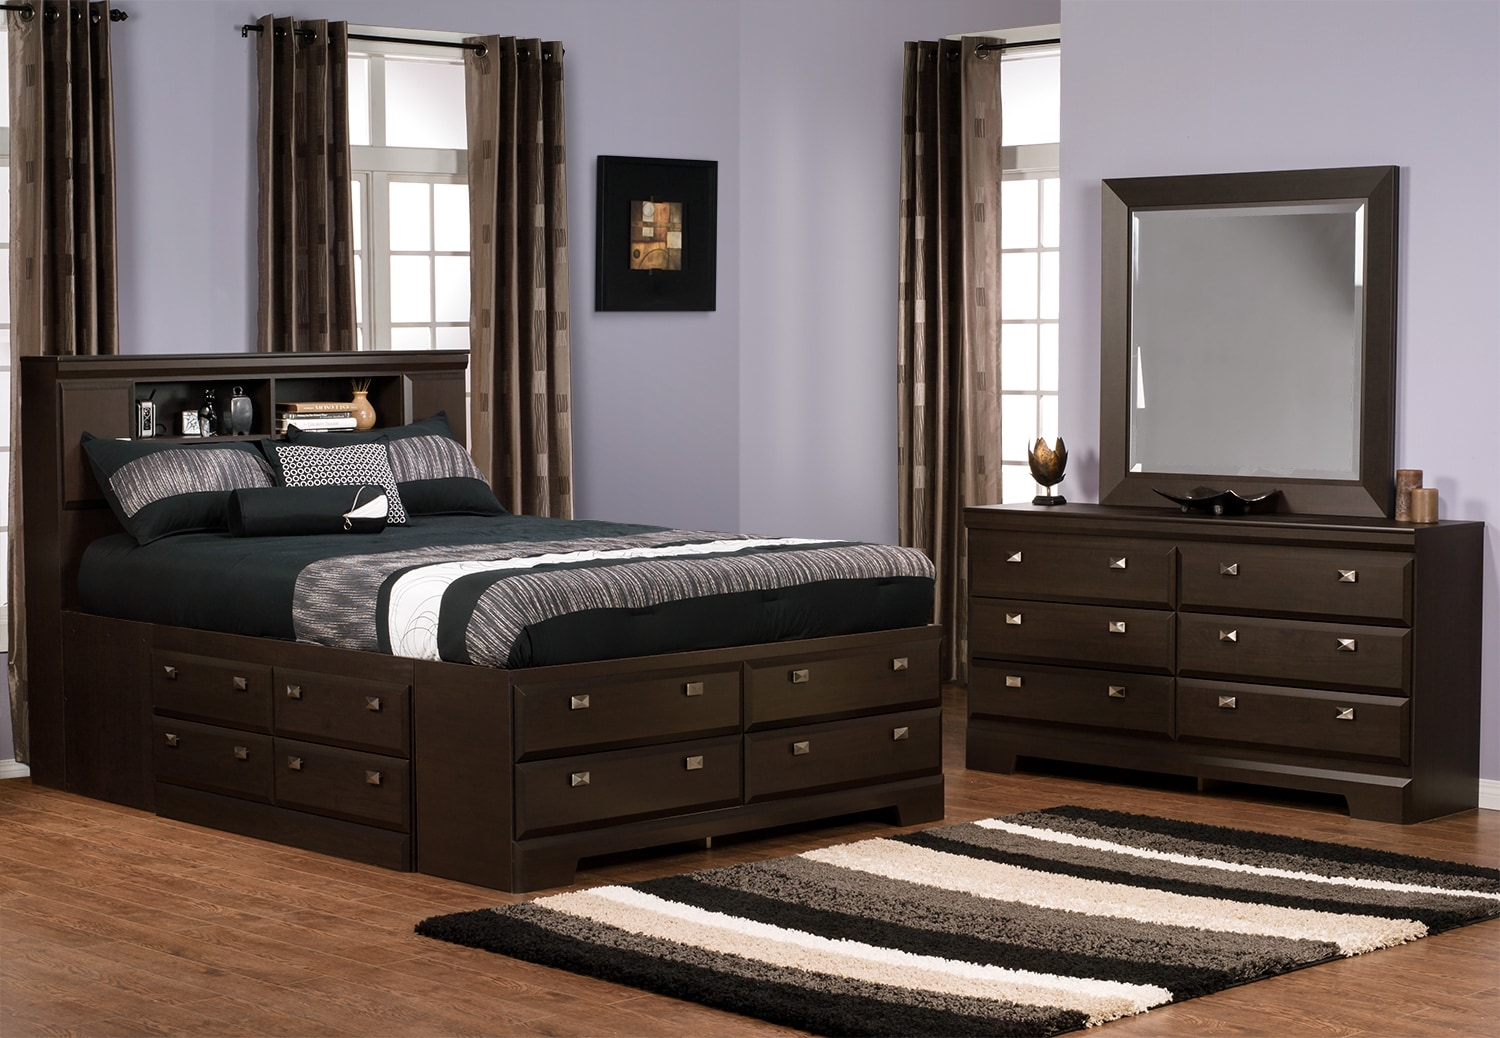 Bedroom Furniture - Yorkdale 5-Piece Queen Bookcase Storage Bedroom Package